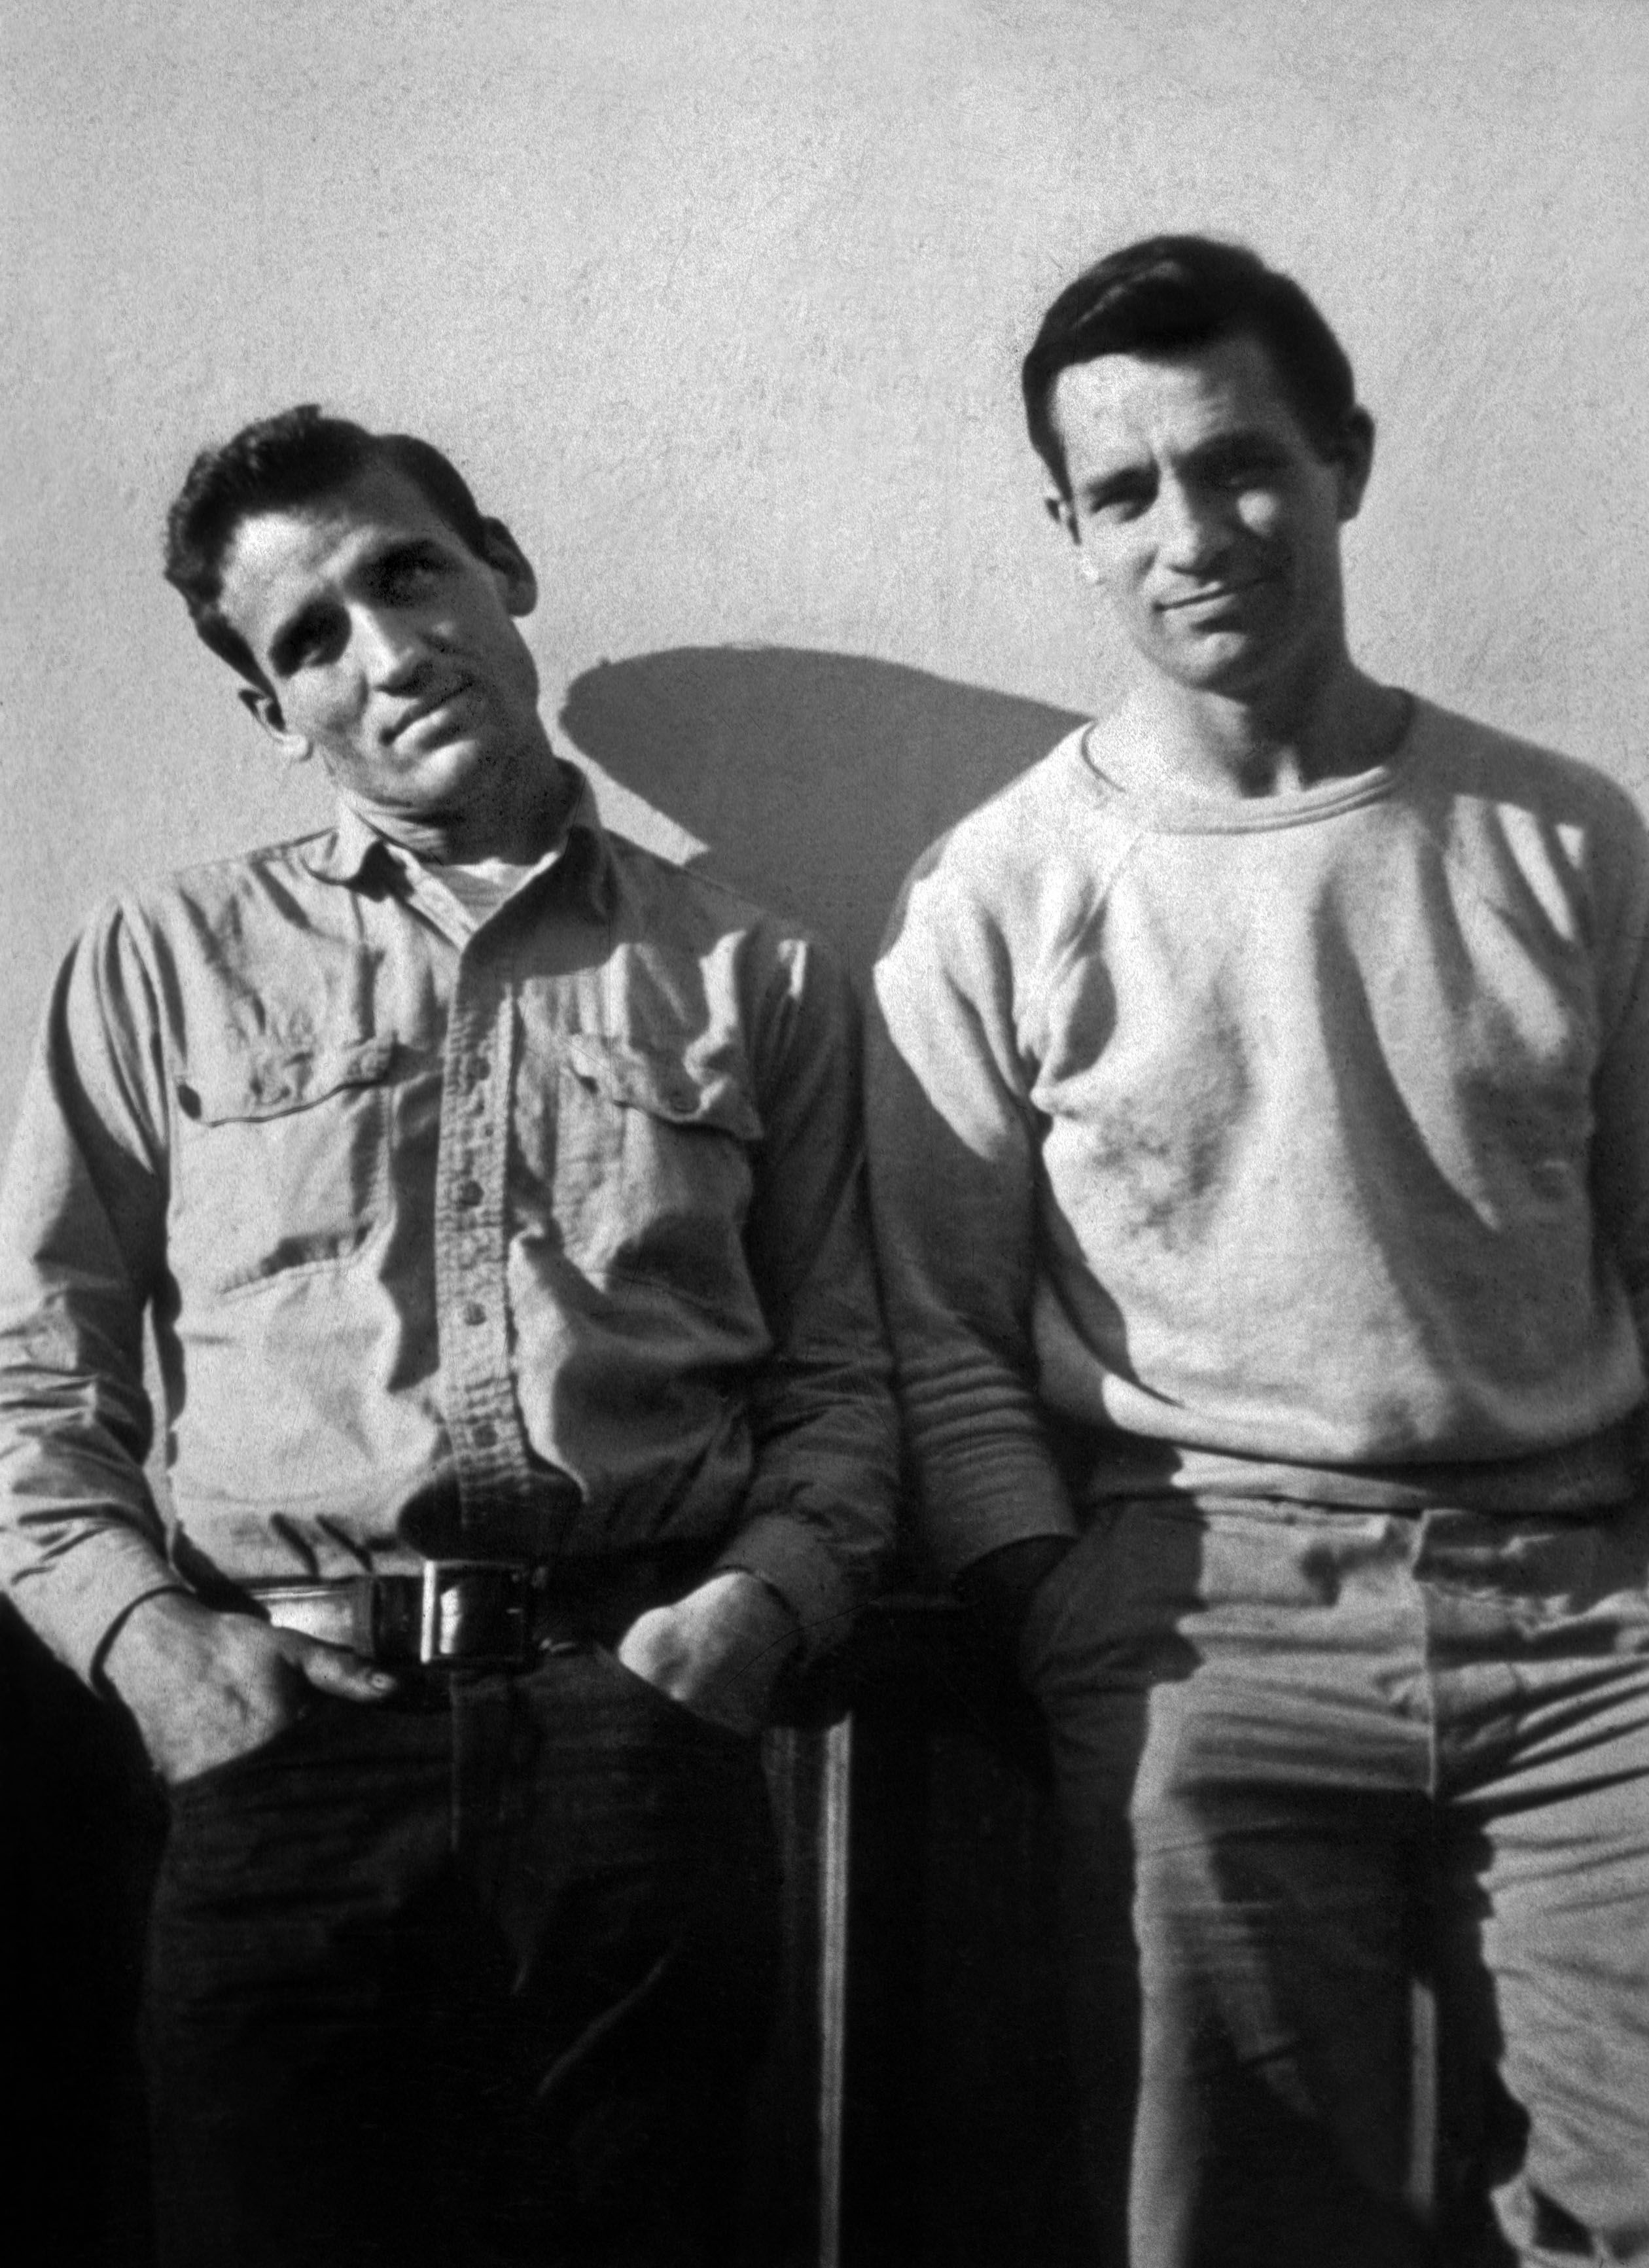 an analysis of neal cassady in on the road Fifty years after the publication of on the road , james liddy assesses jack  kerouac's literary reconfiguration of the american.